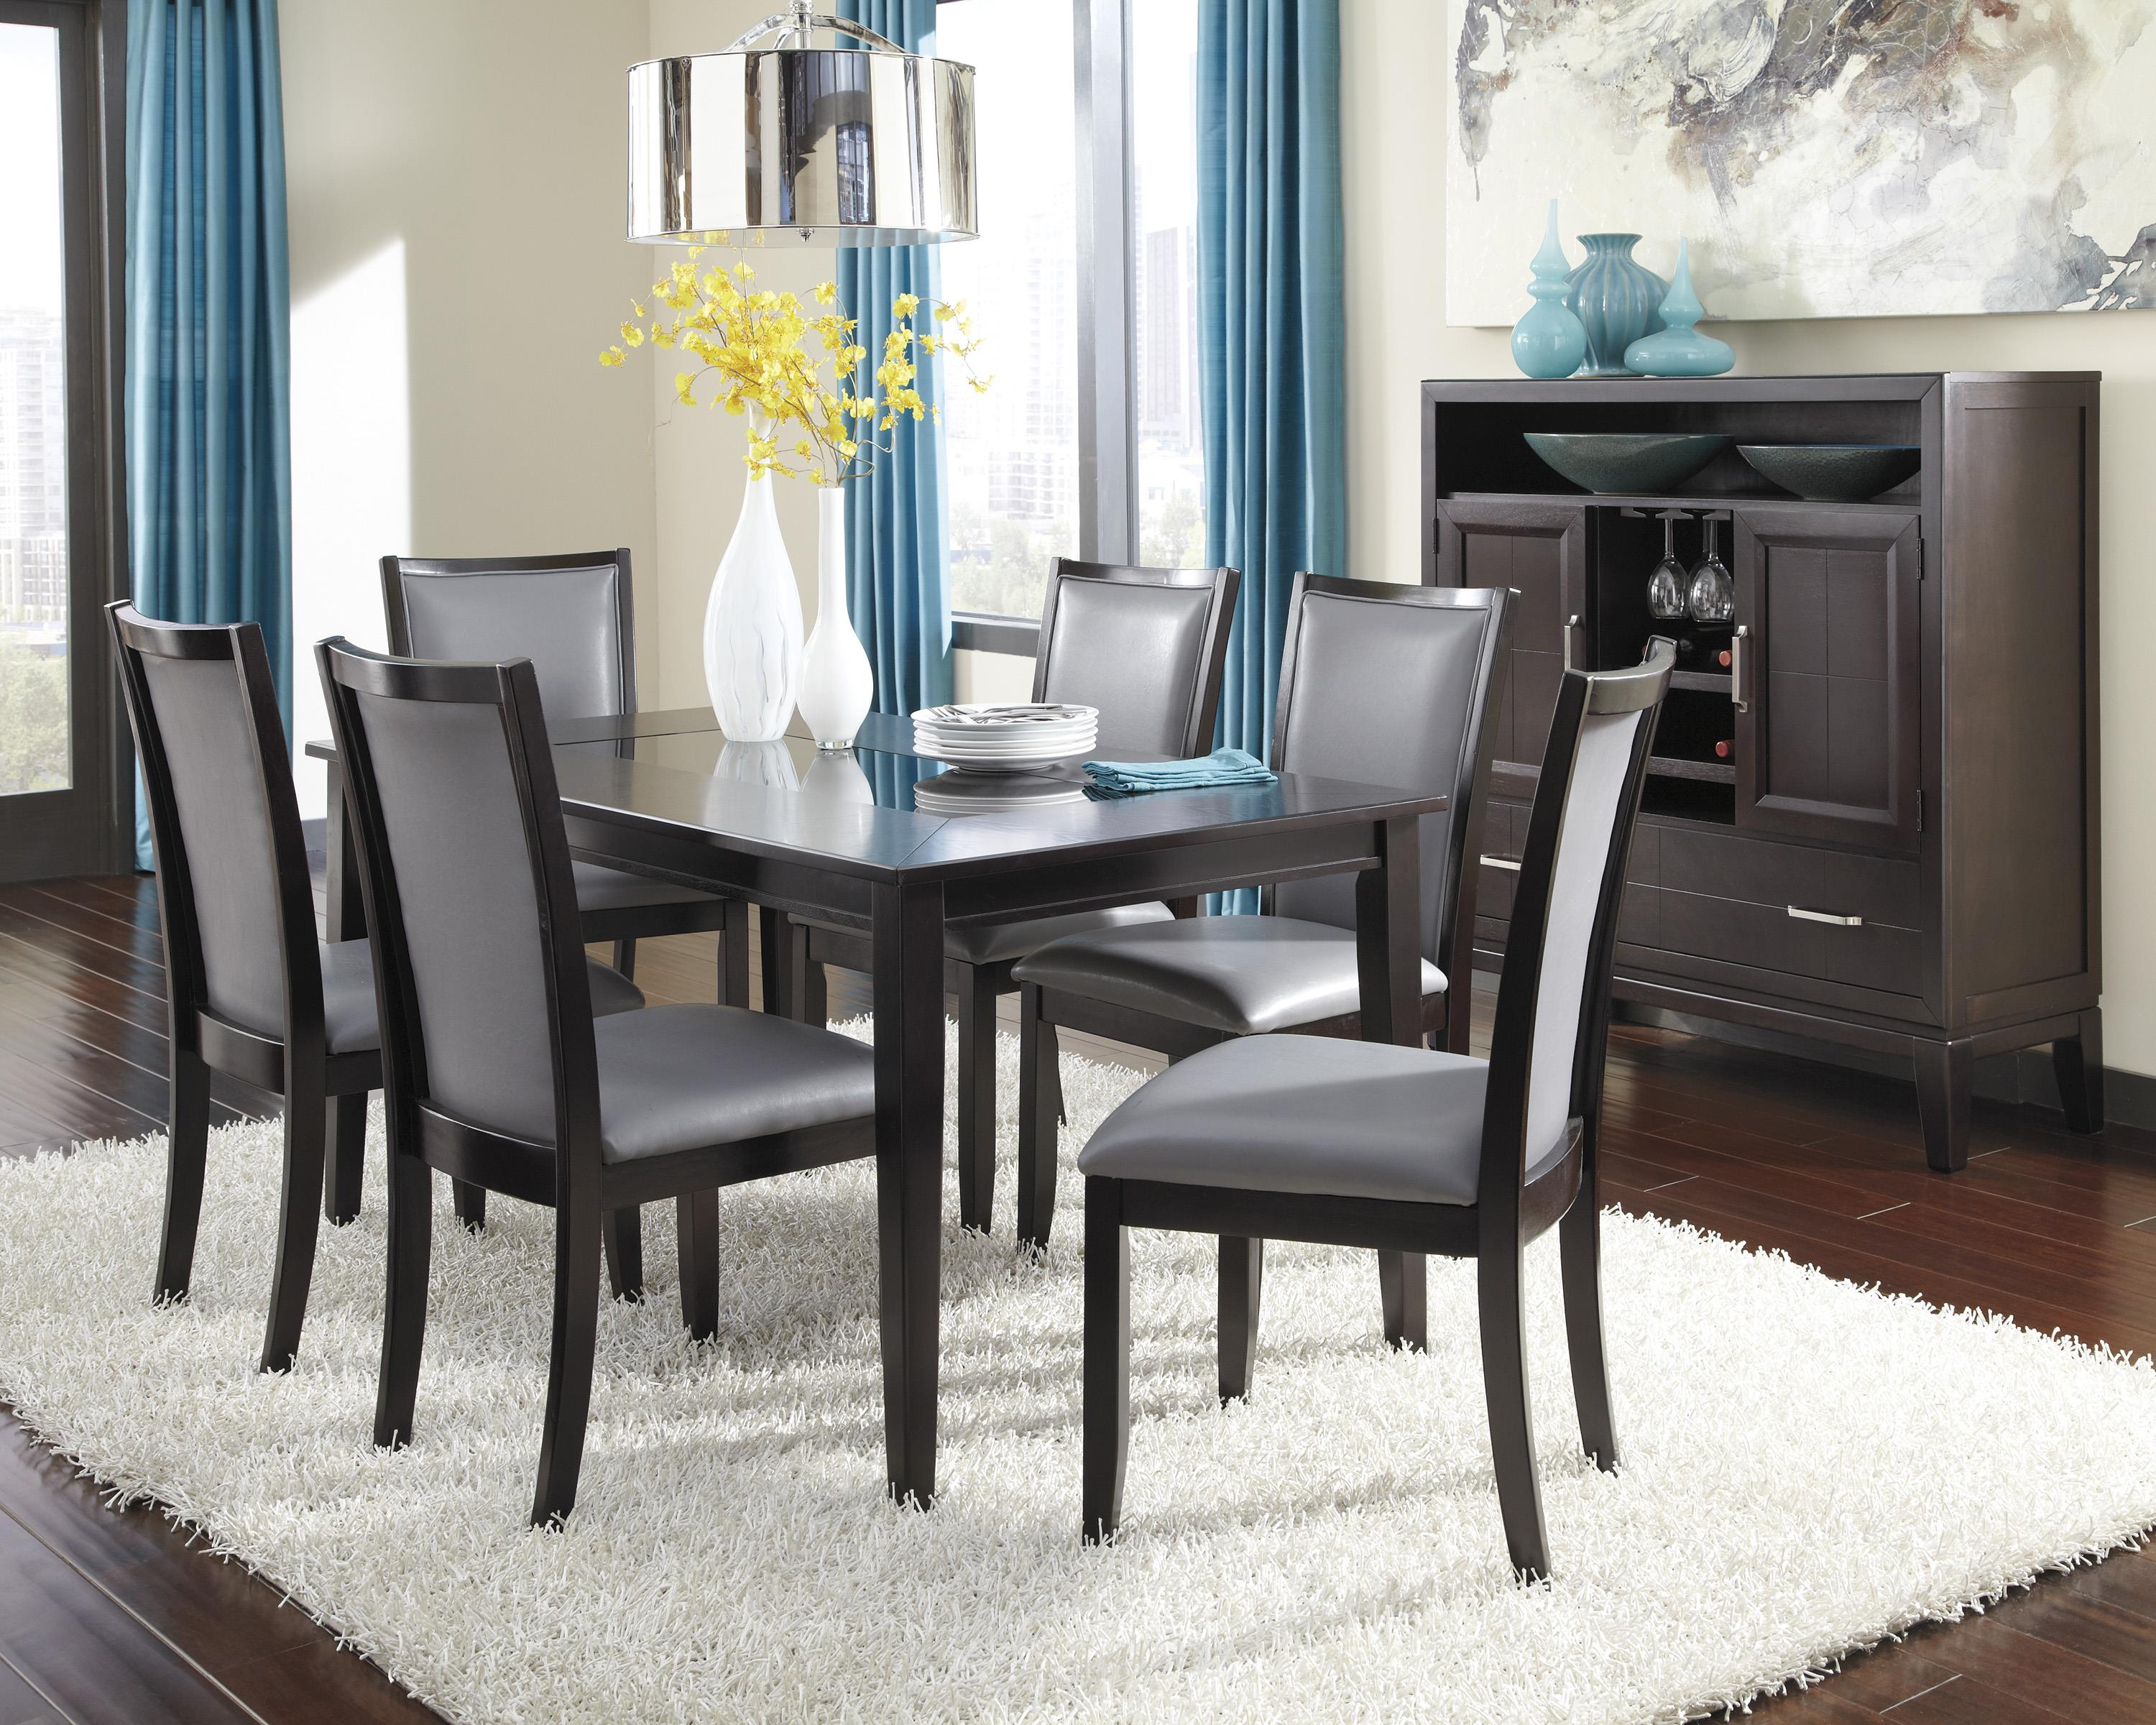 dining table set with gray chairs becker furniture world dining 7